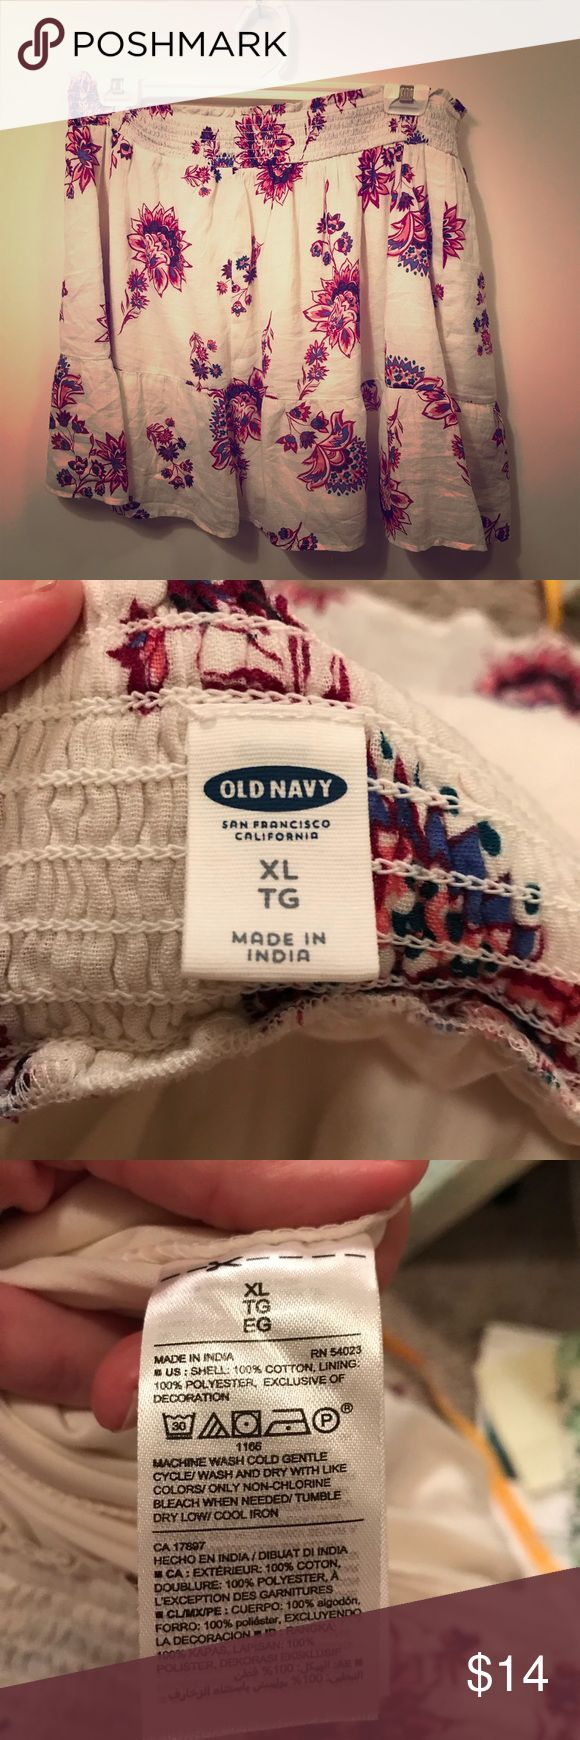 Smock-waist Circle Skirt White OLD NAVY Floral XL NWOT! Super cute summer/fall 2017, still in stores! 19.99 retail. Cream with burgundy flowers, 100% cotton, lined. Waist measures 37 inches wide with elastic so it could accommodate larger size waist and length is 19 inches. There is a soft ruffle at the bottom.  Made in India.  Please email me with questions Old Navy Skirts Mini